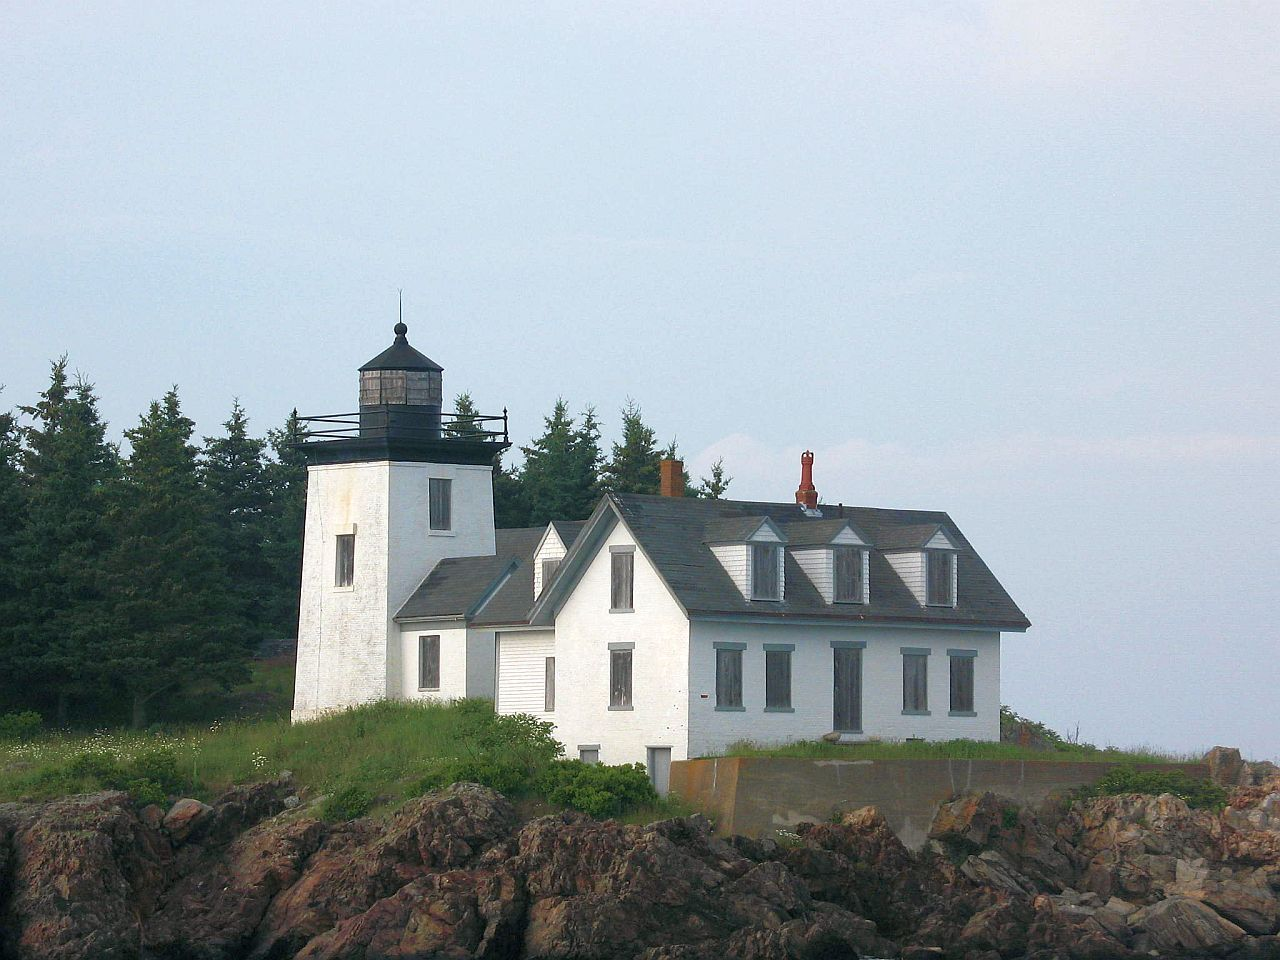 Indian Island Lighthouse Private Home Owned By New York Family Rockland Maine Saw This One In 2012 Lighthouse For Sale Lighthouse Lighthouse Inspiration